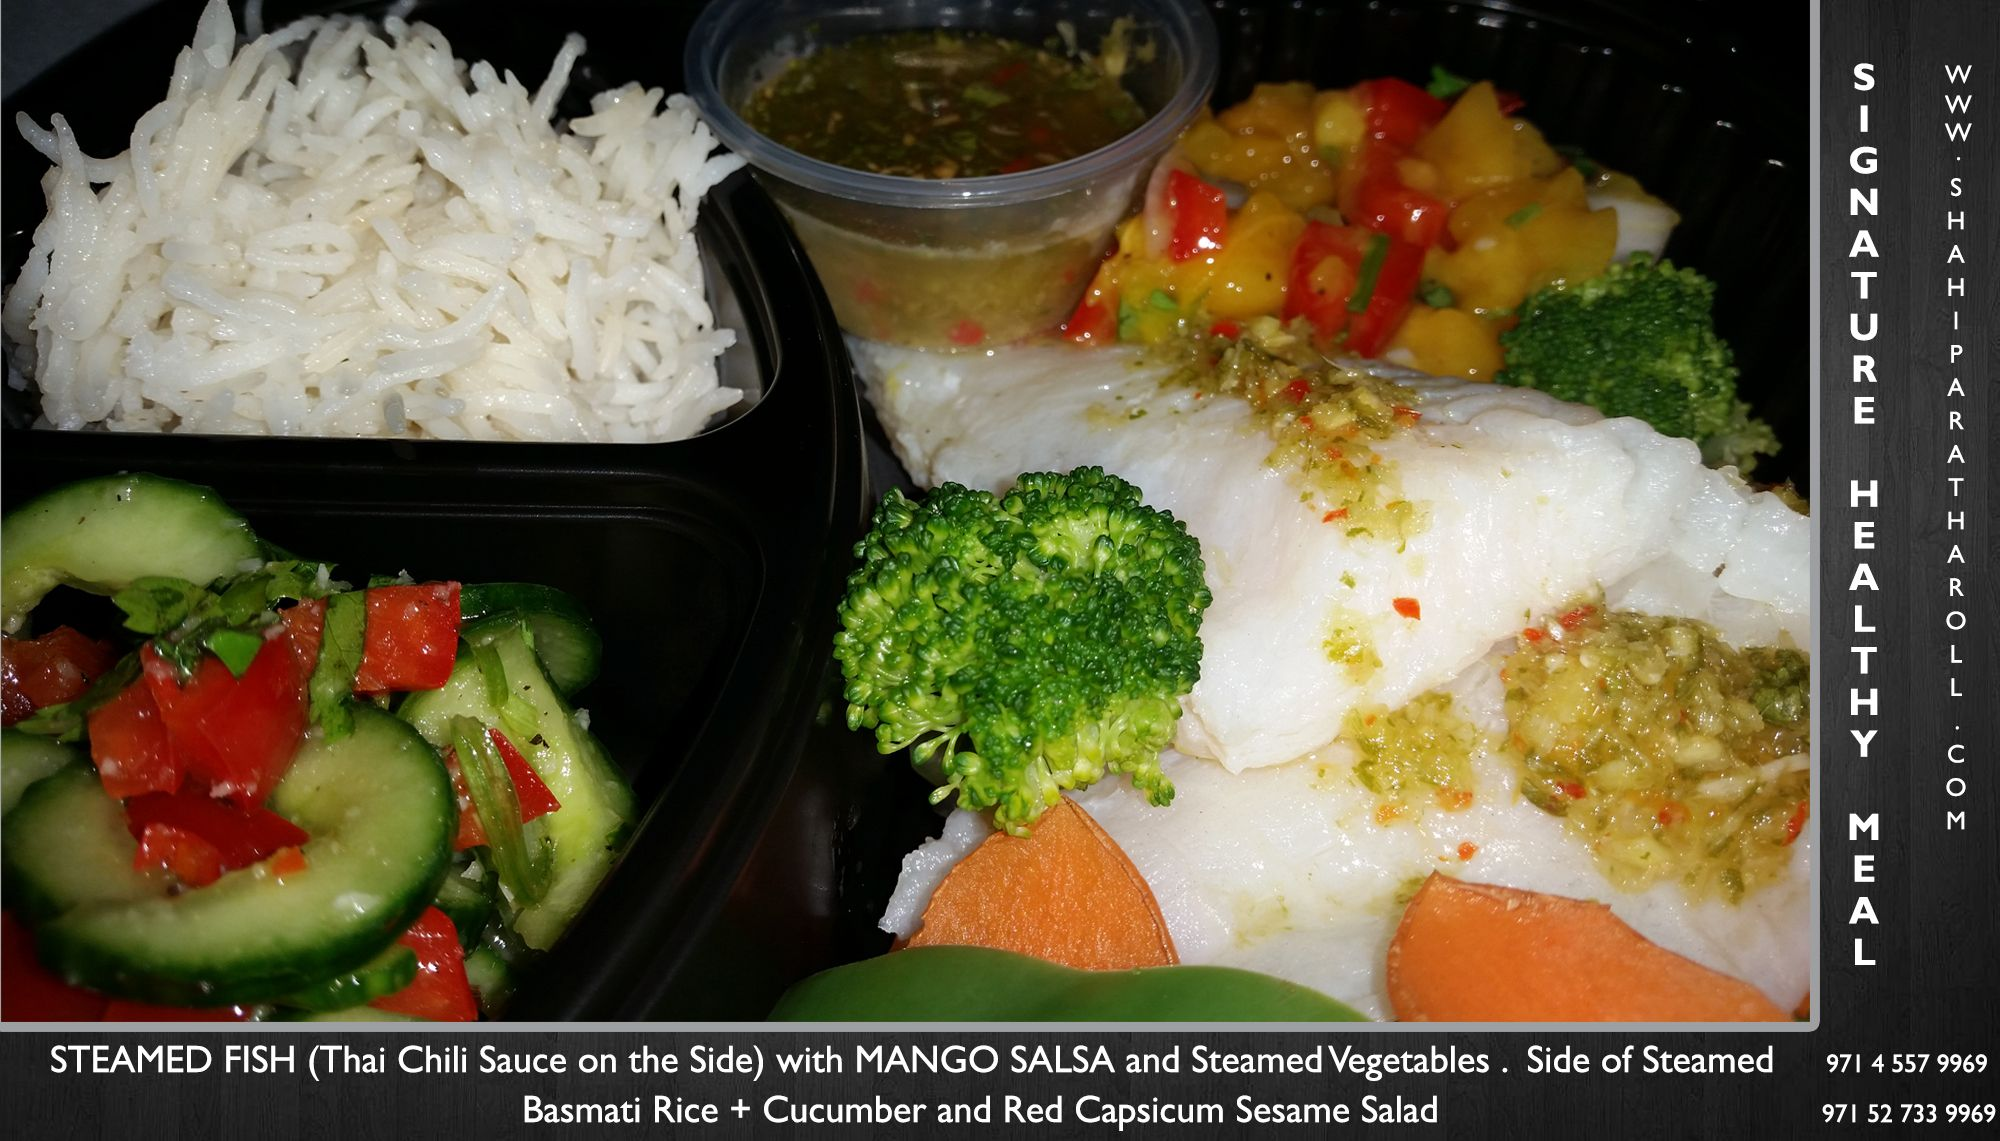 Engaging Lunchbox Delivery Lunch Delivery Delivery Restaurants That Deliver Near Me That Are Open Right Now Restaurants That Deliver Near Me Mexican Lunch Delivery Delivery Restaurantsin Online Lunchb